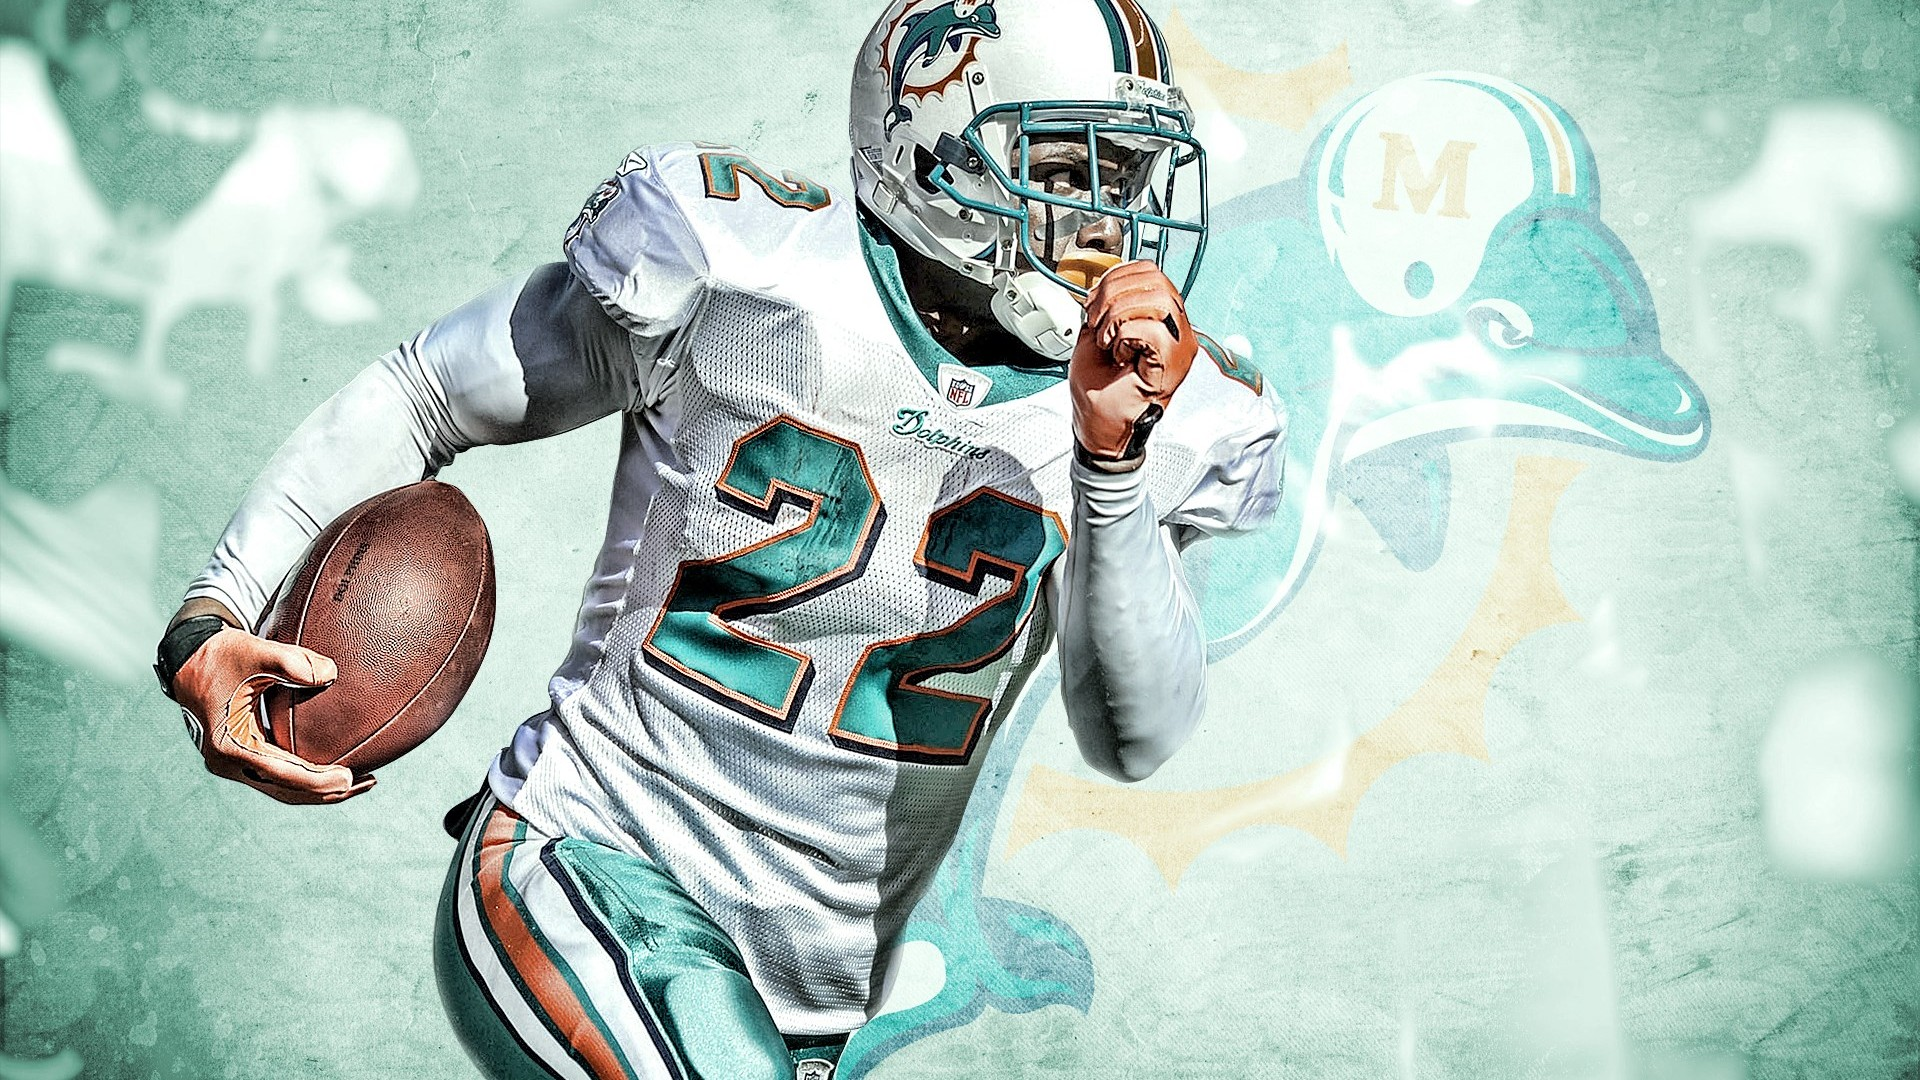 Miami Dolphins wallpaper for computer